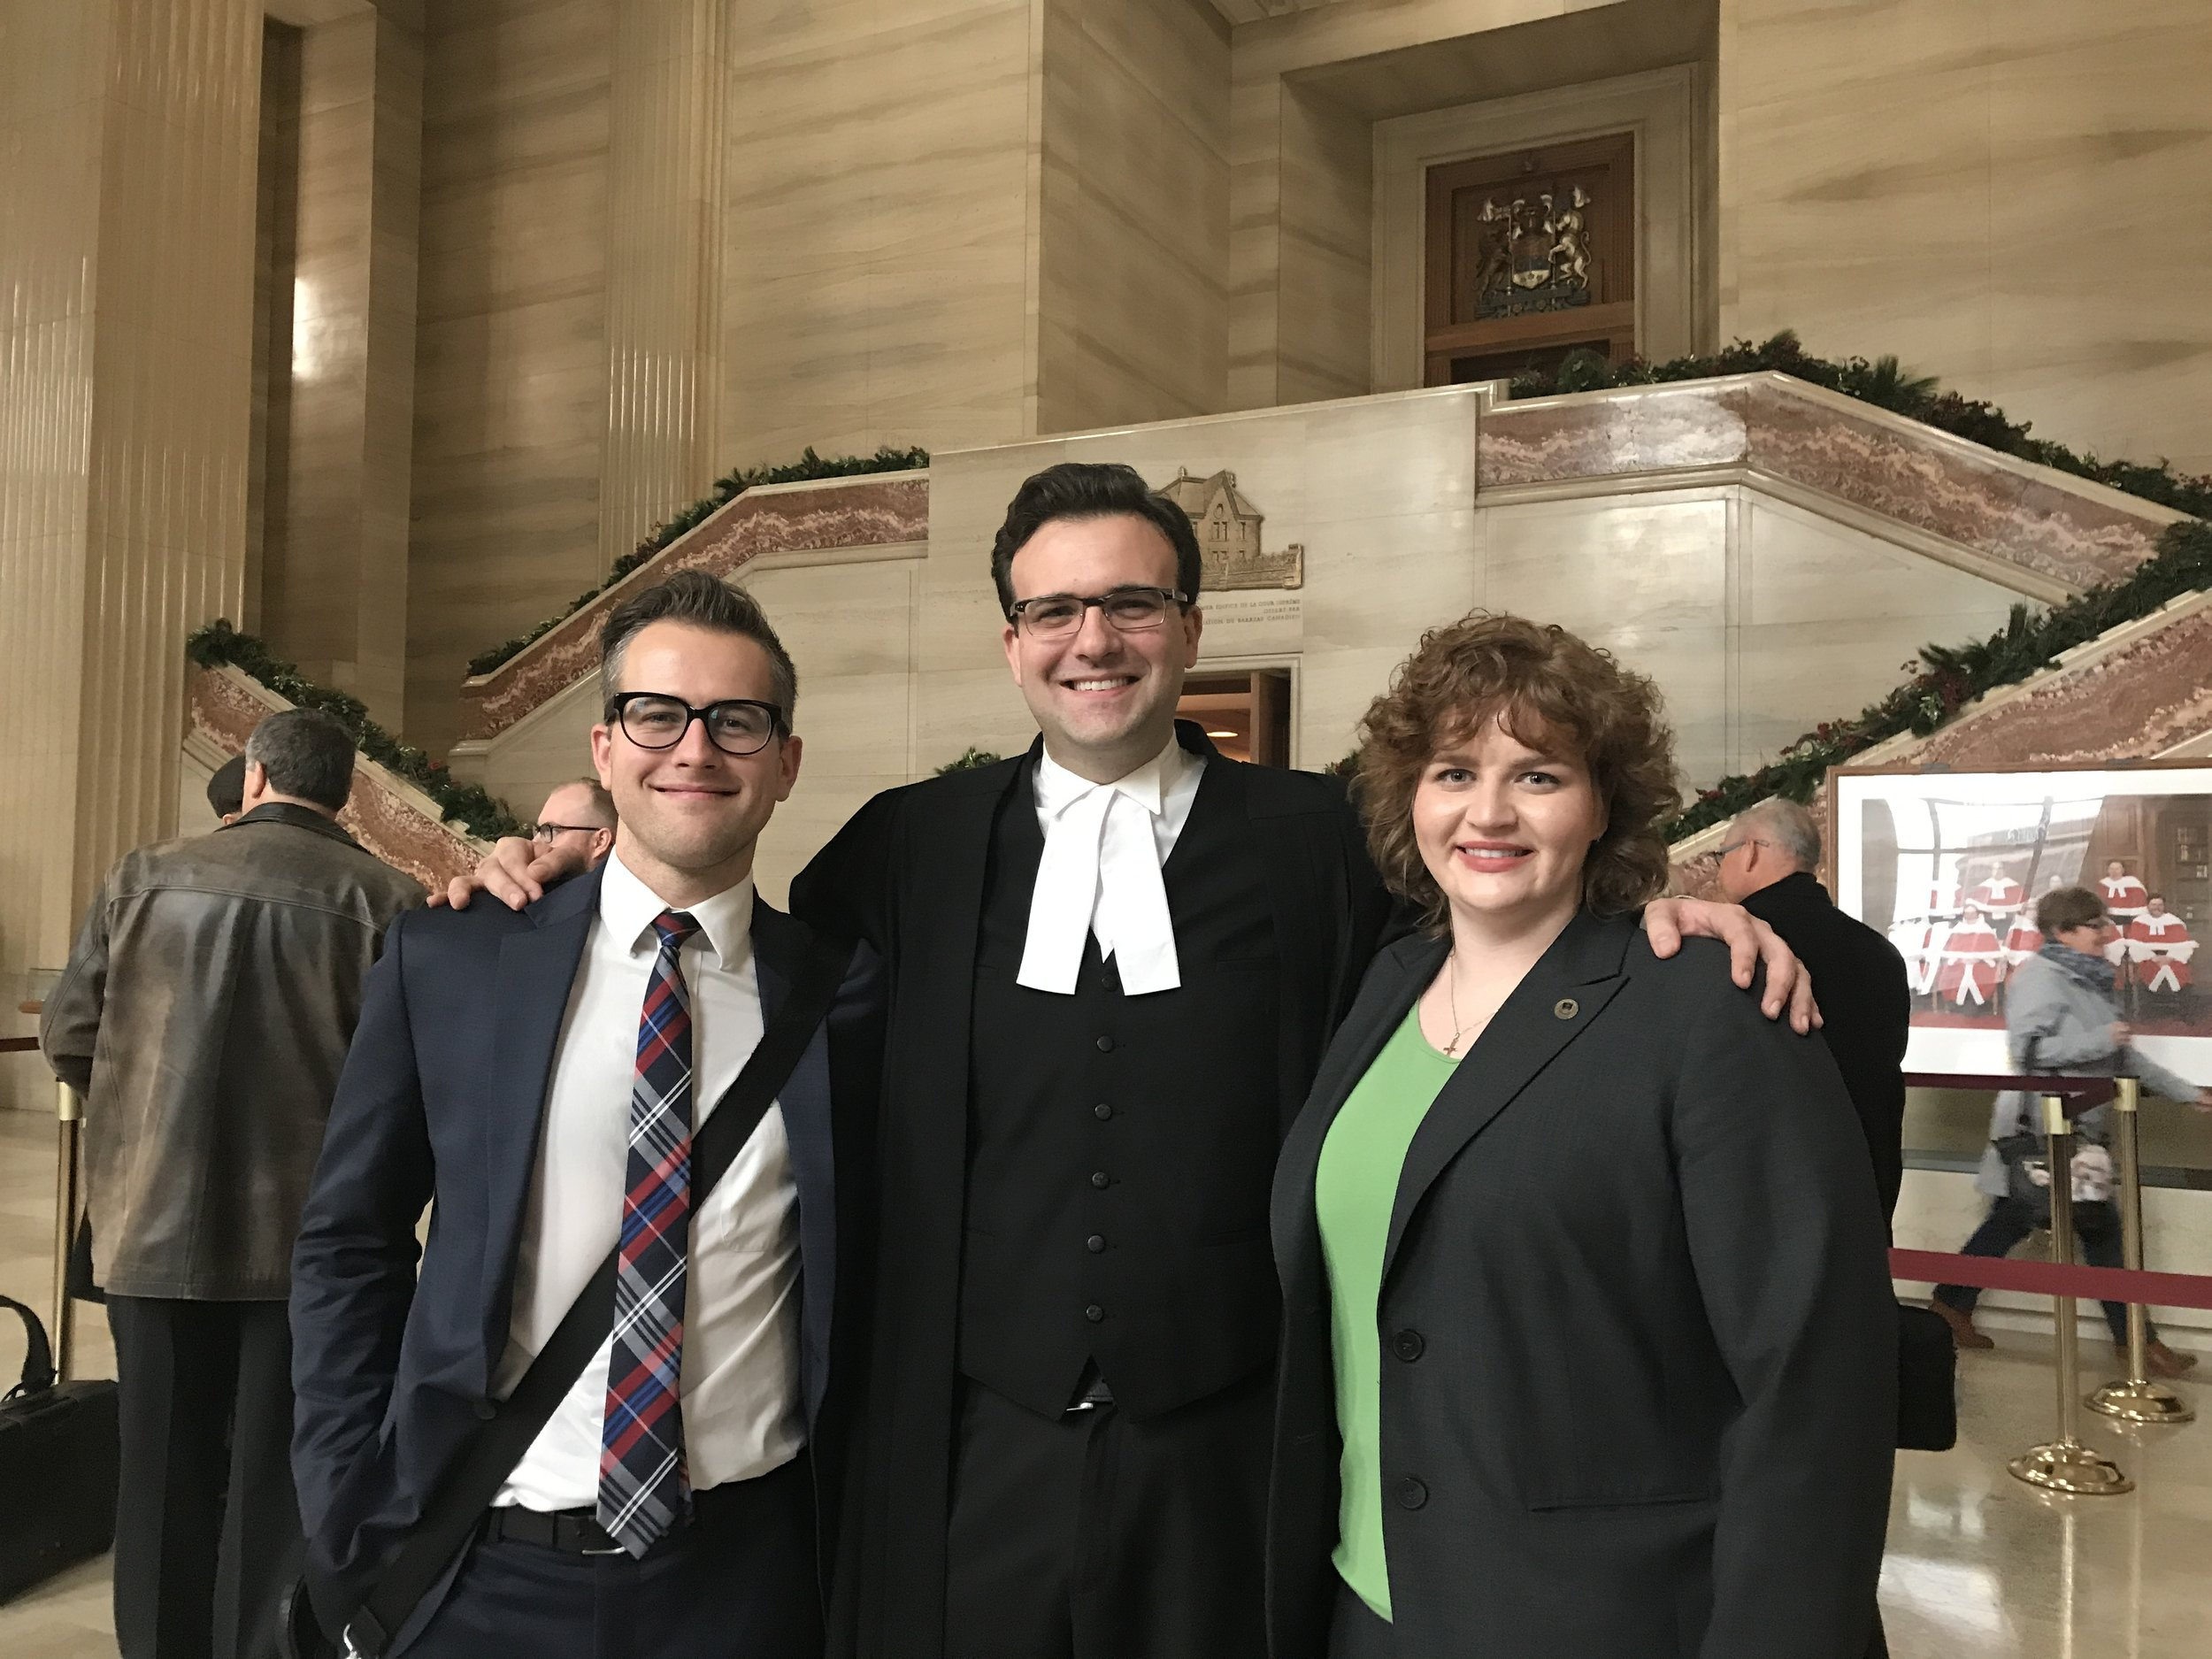 From L to R:  Brayden Volkenant  (applicant student in TWU litigation),  Derek Ross  (counsel for CLF) and  Jessie Legaree  (TWU graduate and former student representative on the CLF Board of Directors)